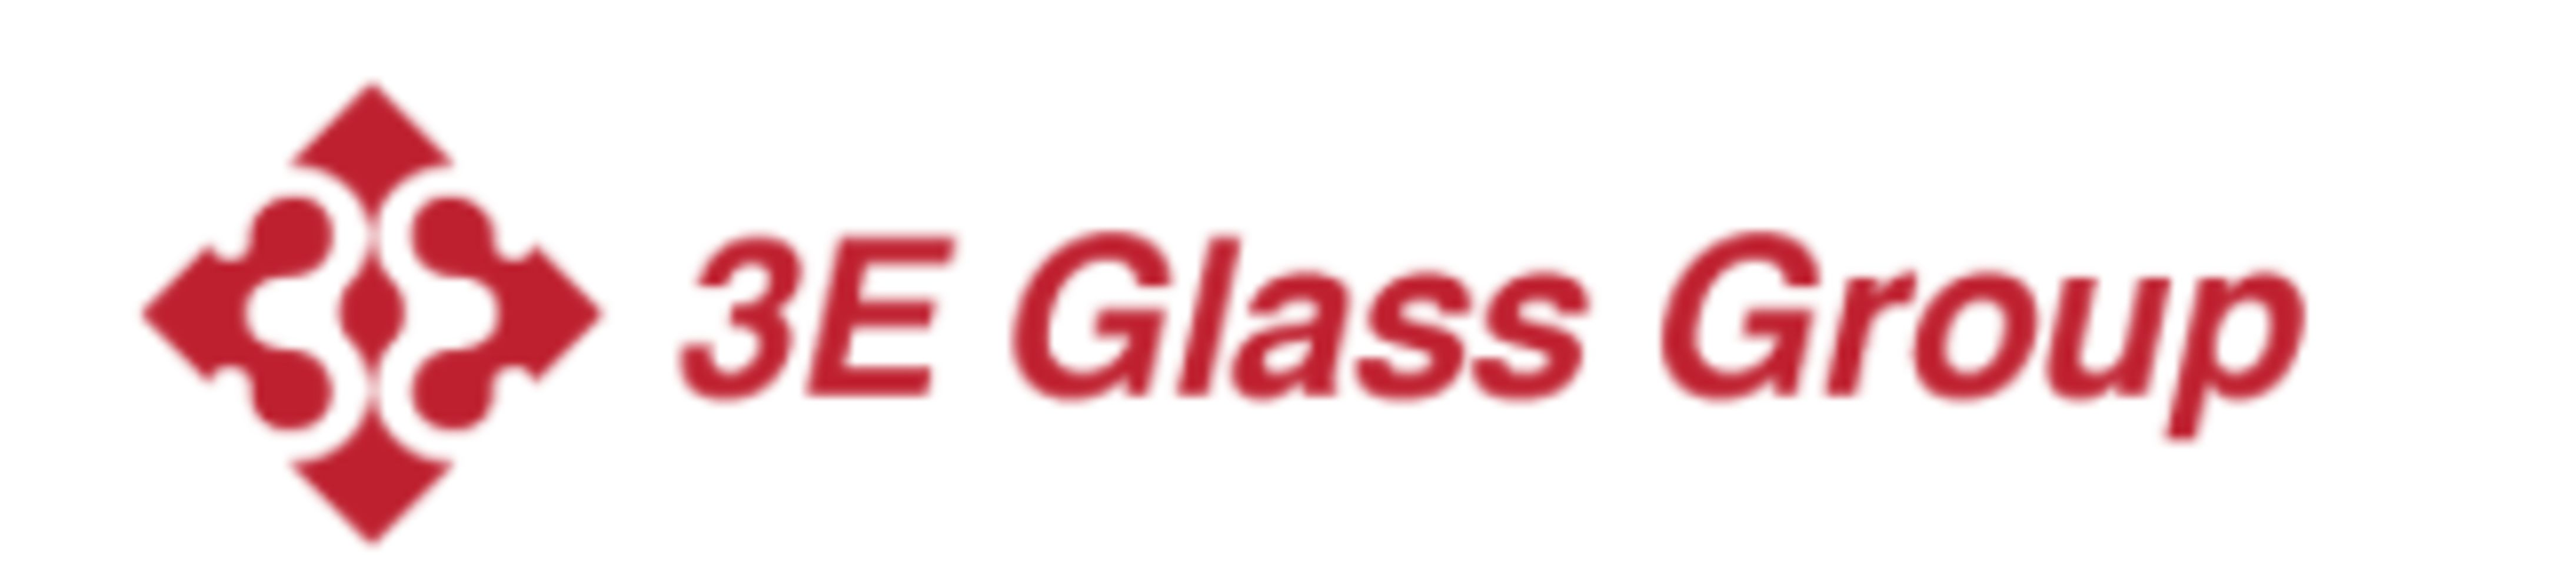 Unreserved 3E Glass (Calgary) Ltd. Timed Online Bankruptcy Auction